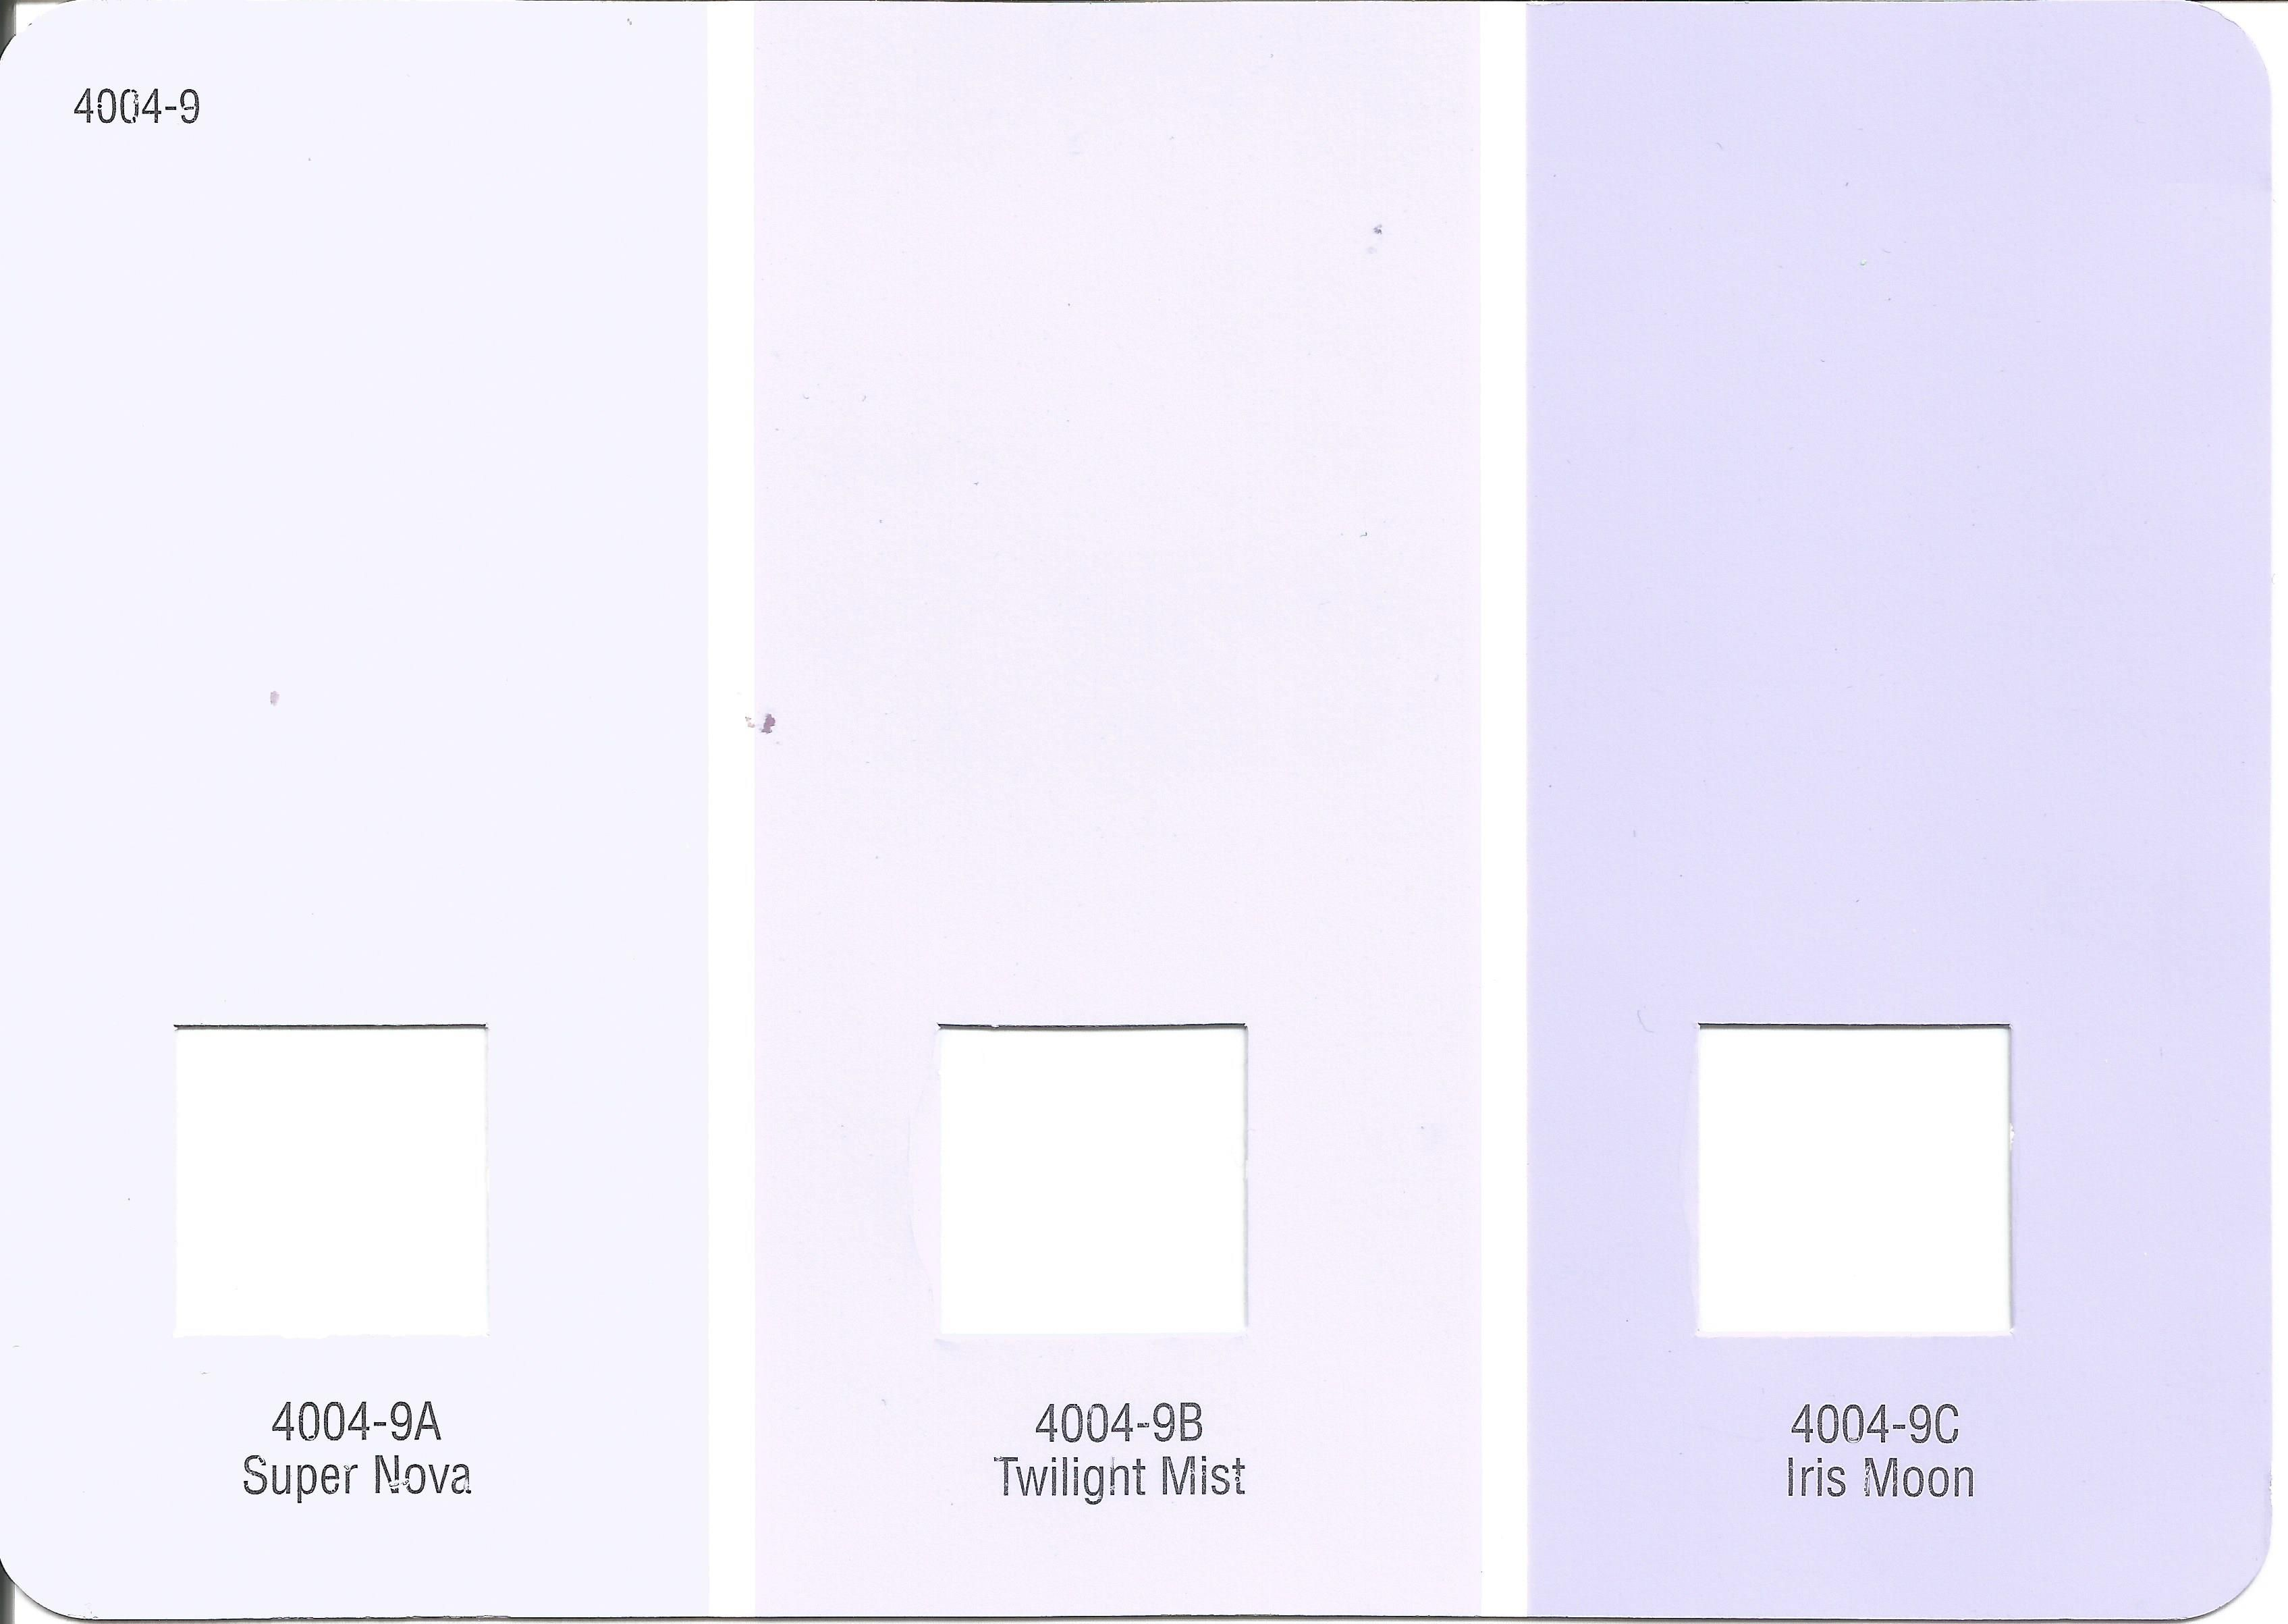 Valspar Paint: Twilight Mist - Will be used as the accent